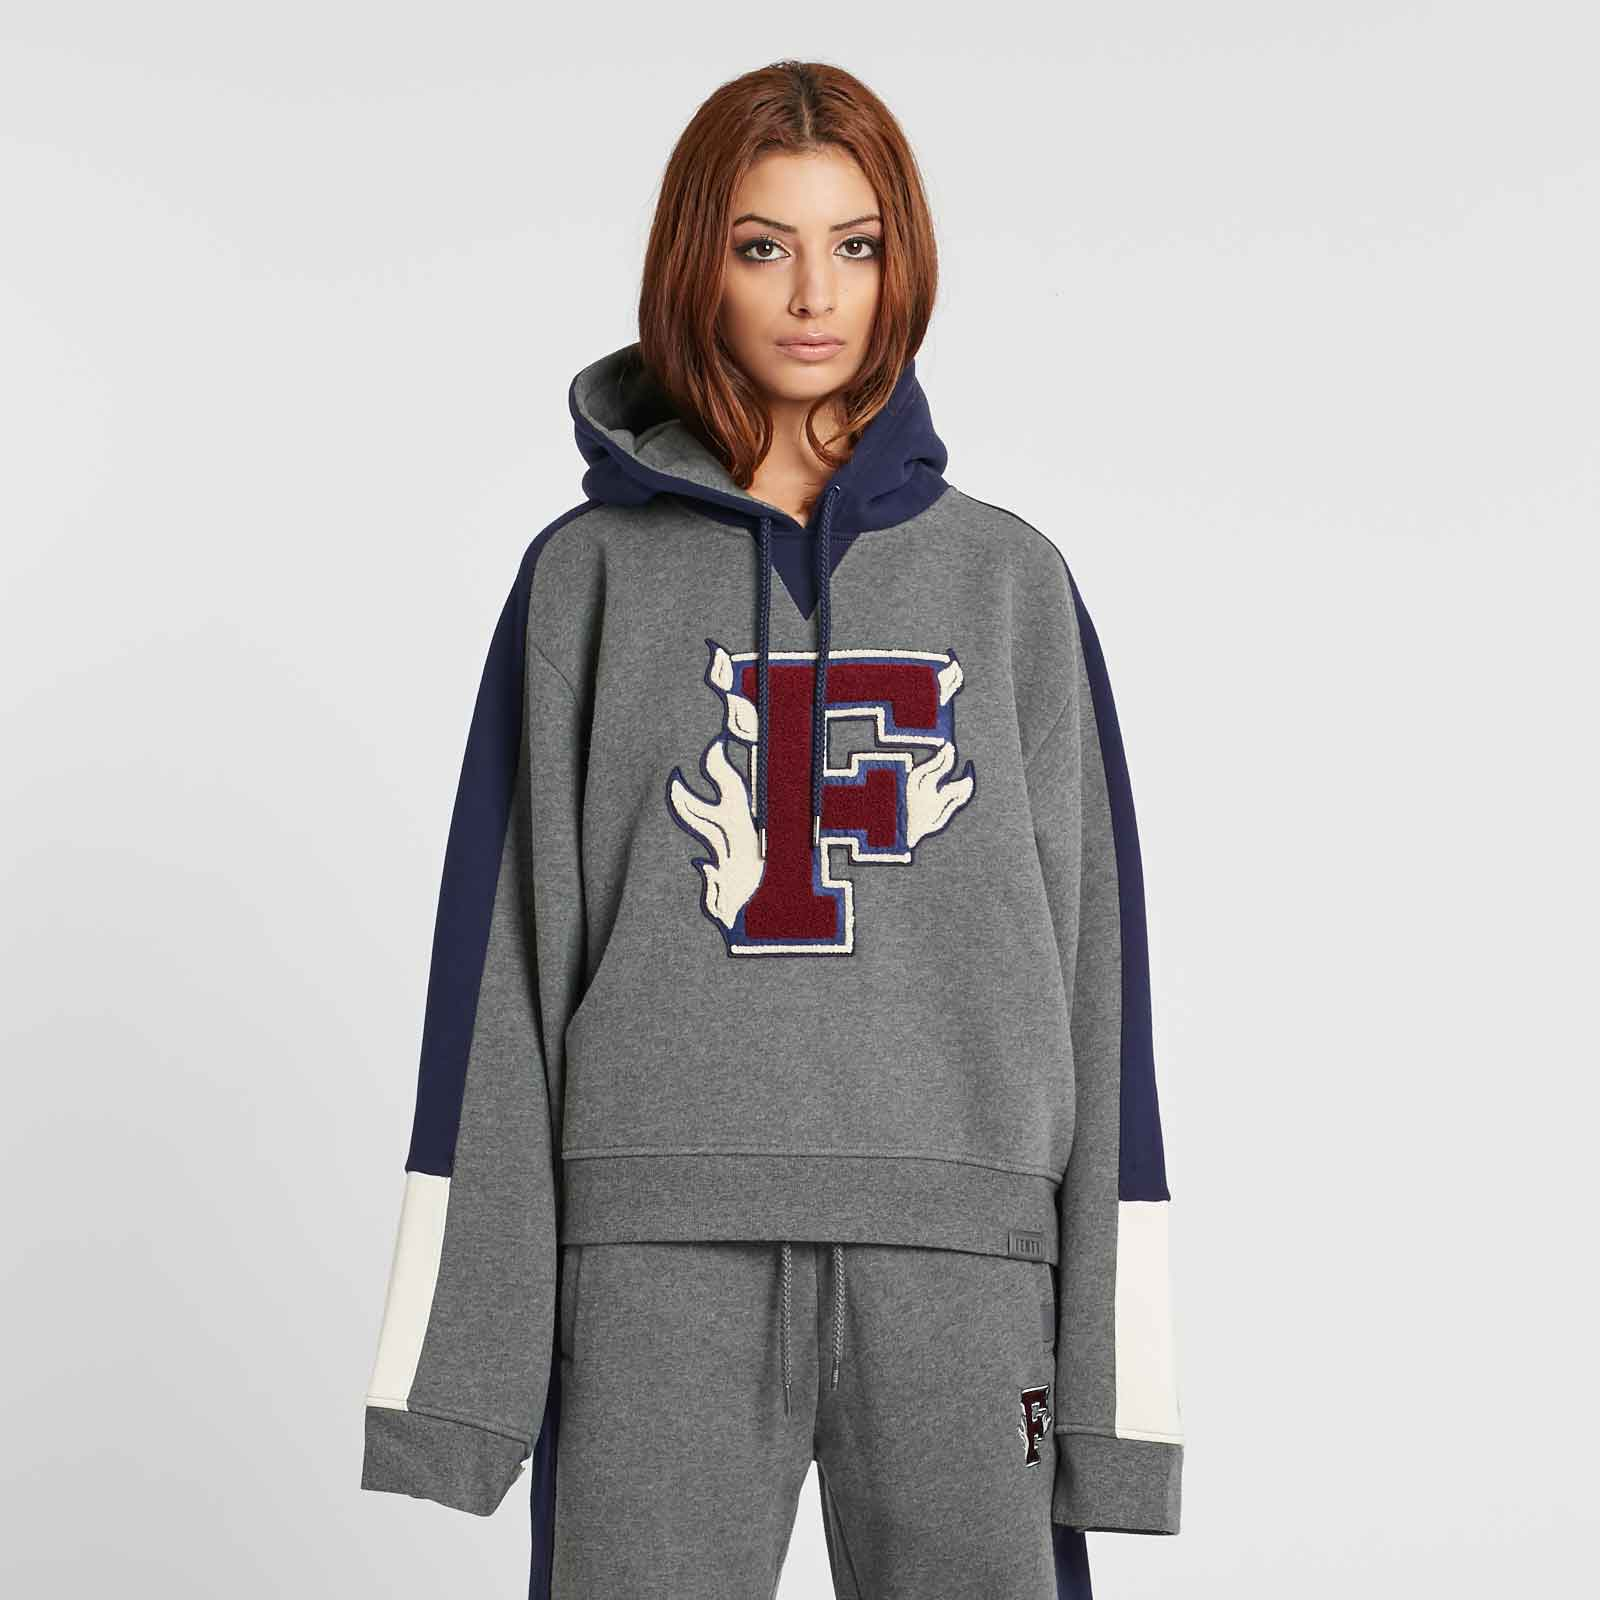 71e1f7df94a8 Puma Hooded Panel Sweatshirt - 575829-01 - Sneakersnstuff